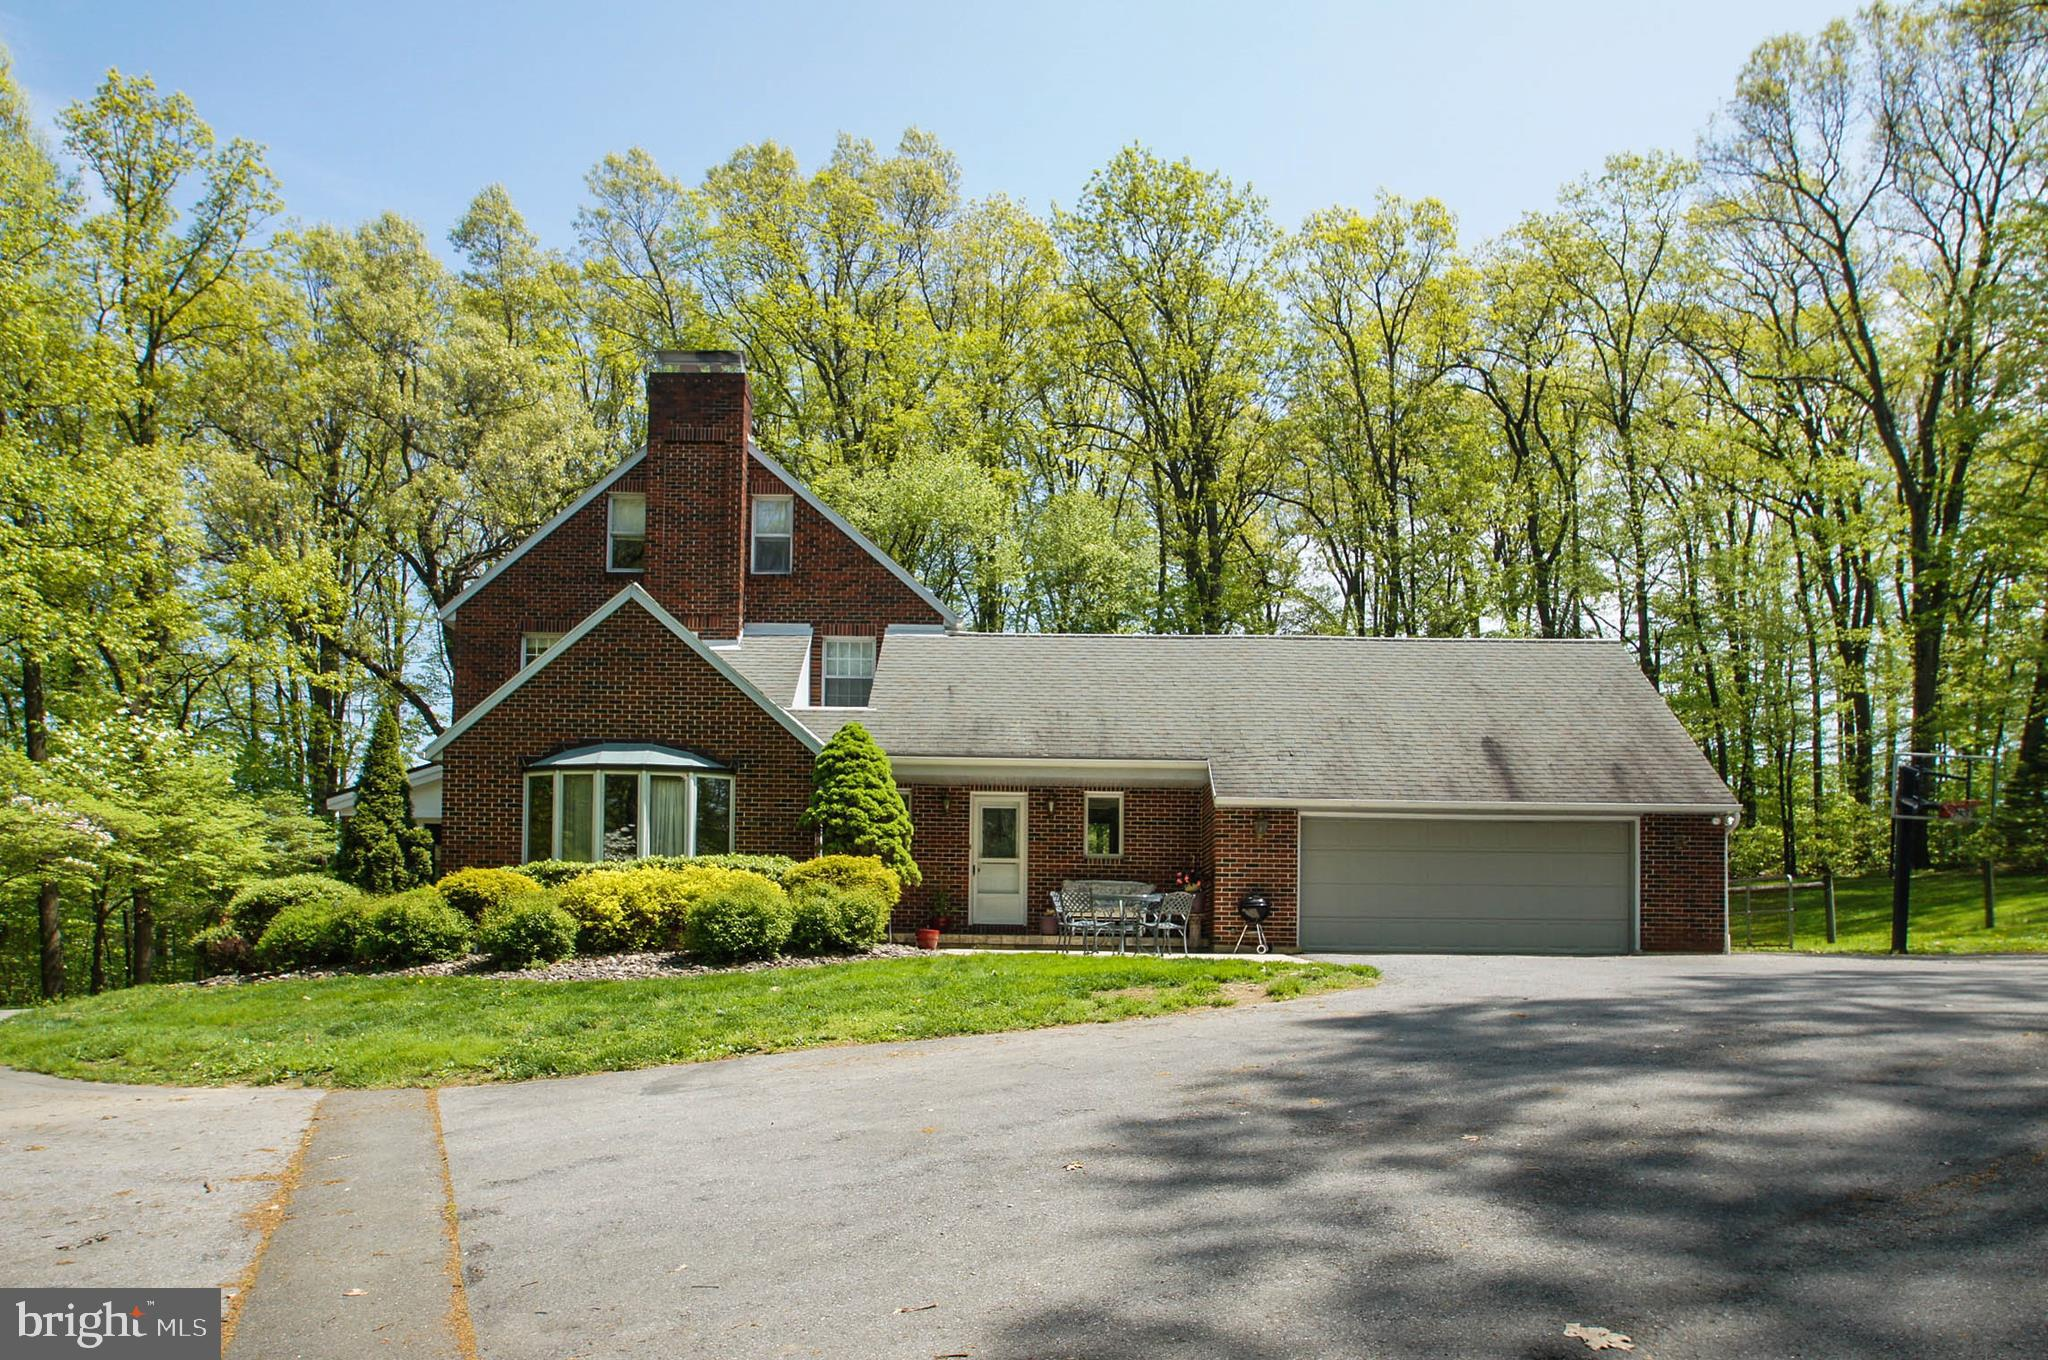 347 MILLER ROAD, READING, PA 19608